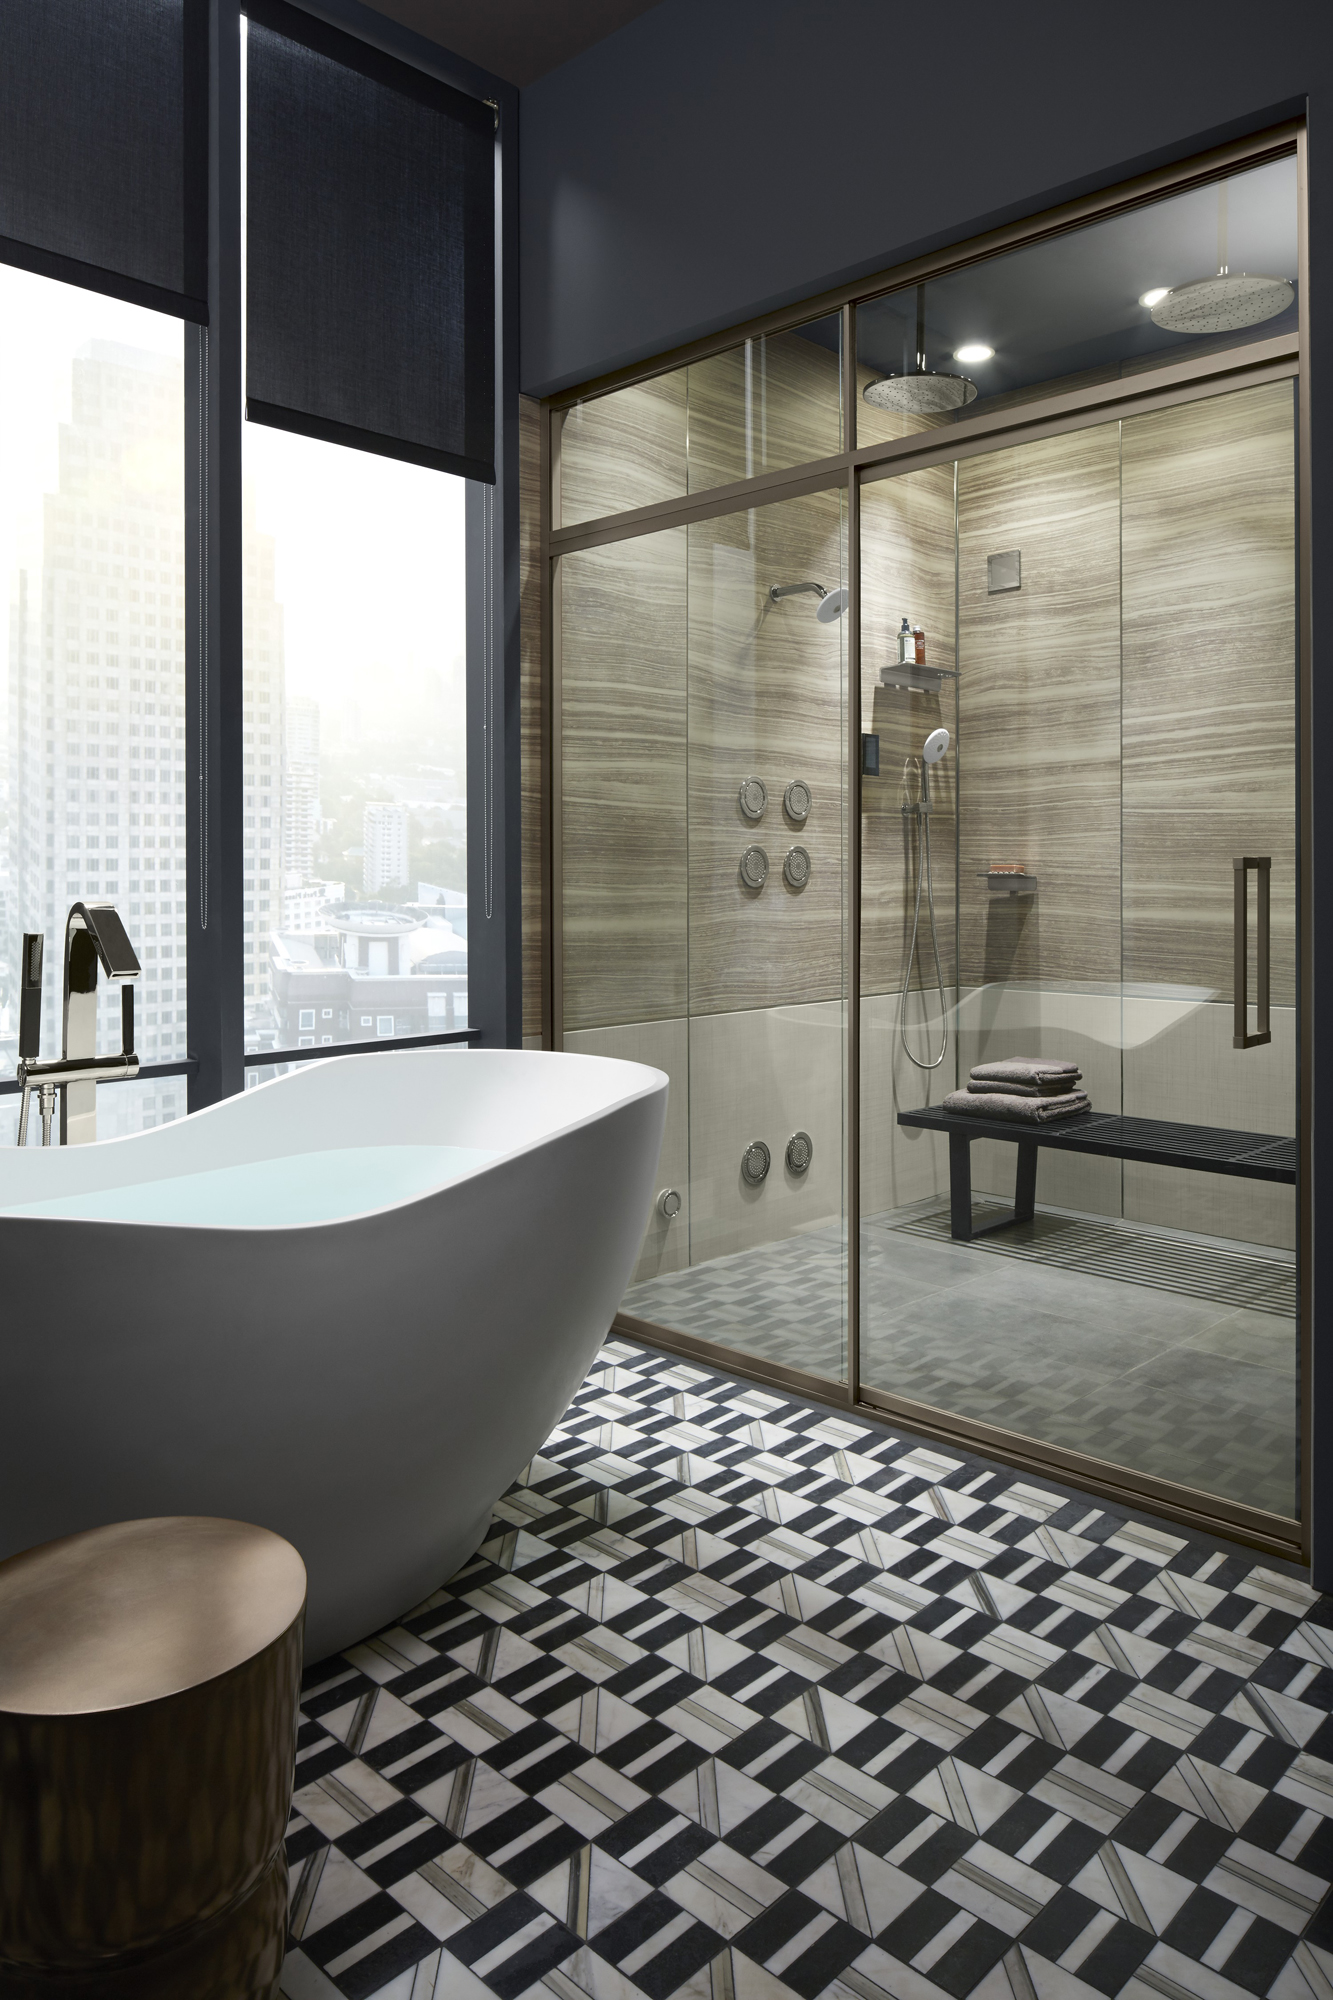 Lattis® shower door   Choreograph® shower walls   WaterTile® body spray     Outfitted with a large two-person shower, this bathroom encourages shared time.